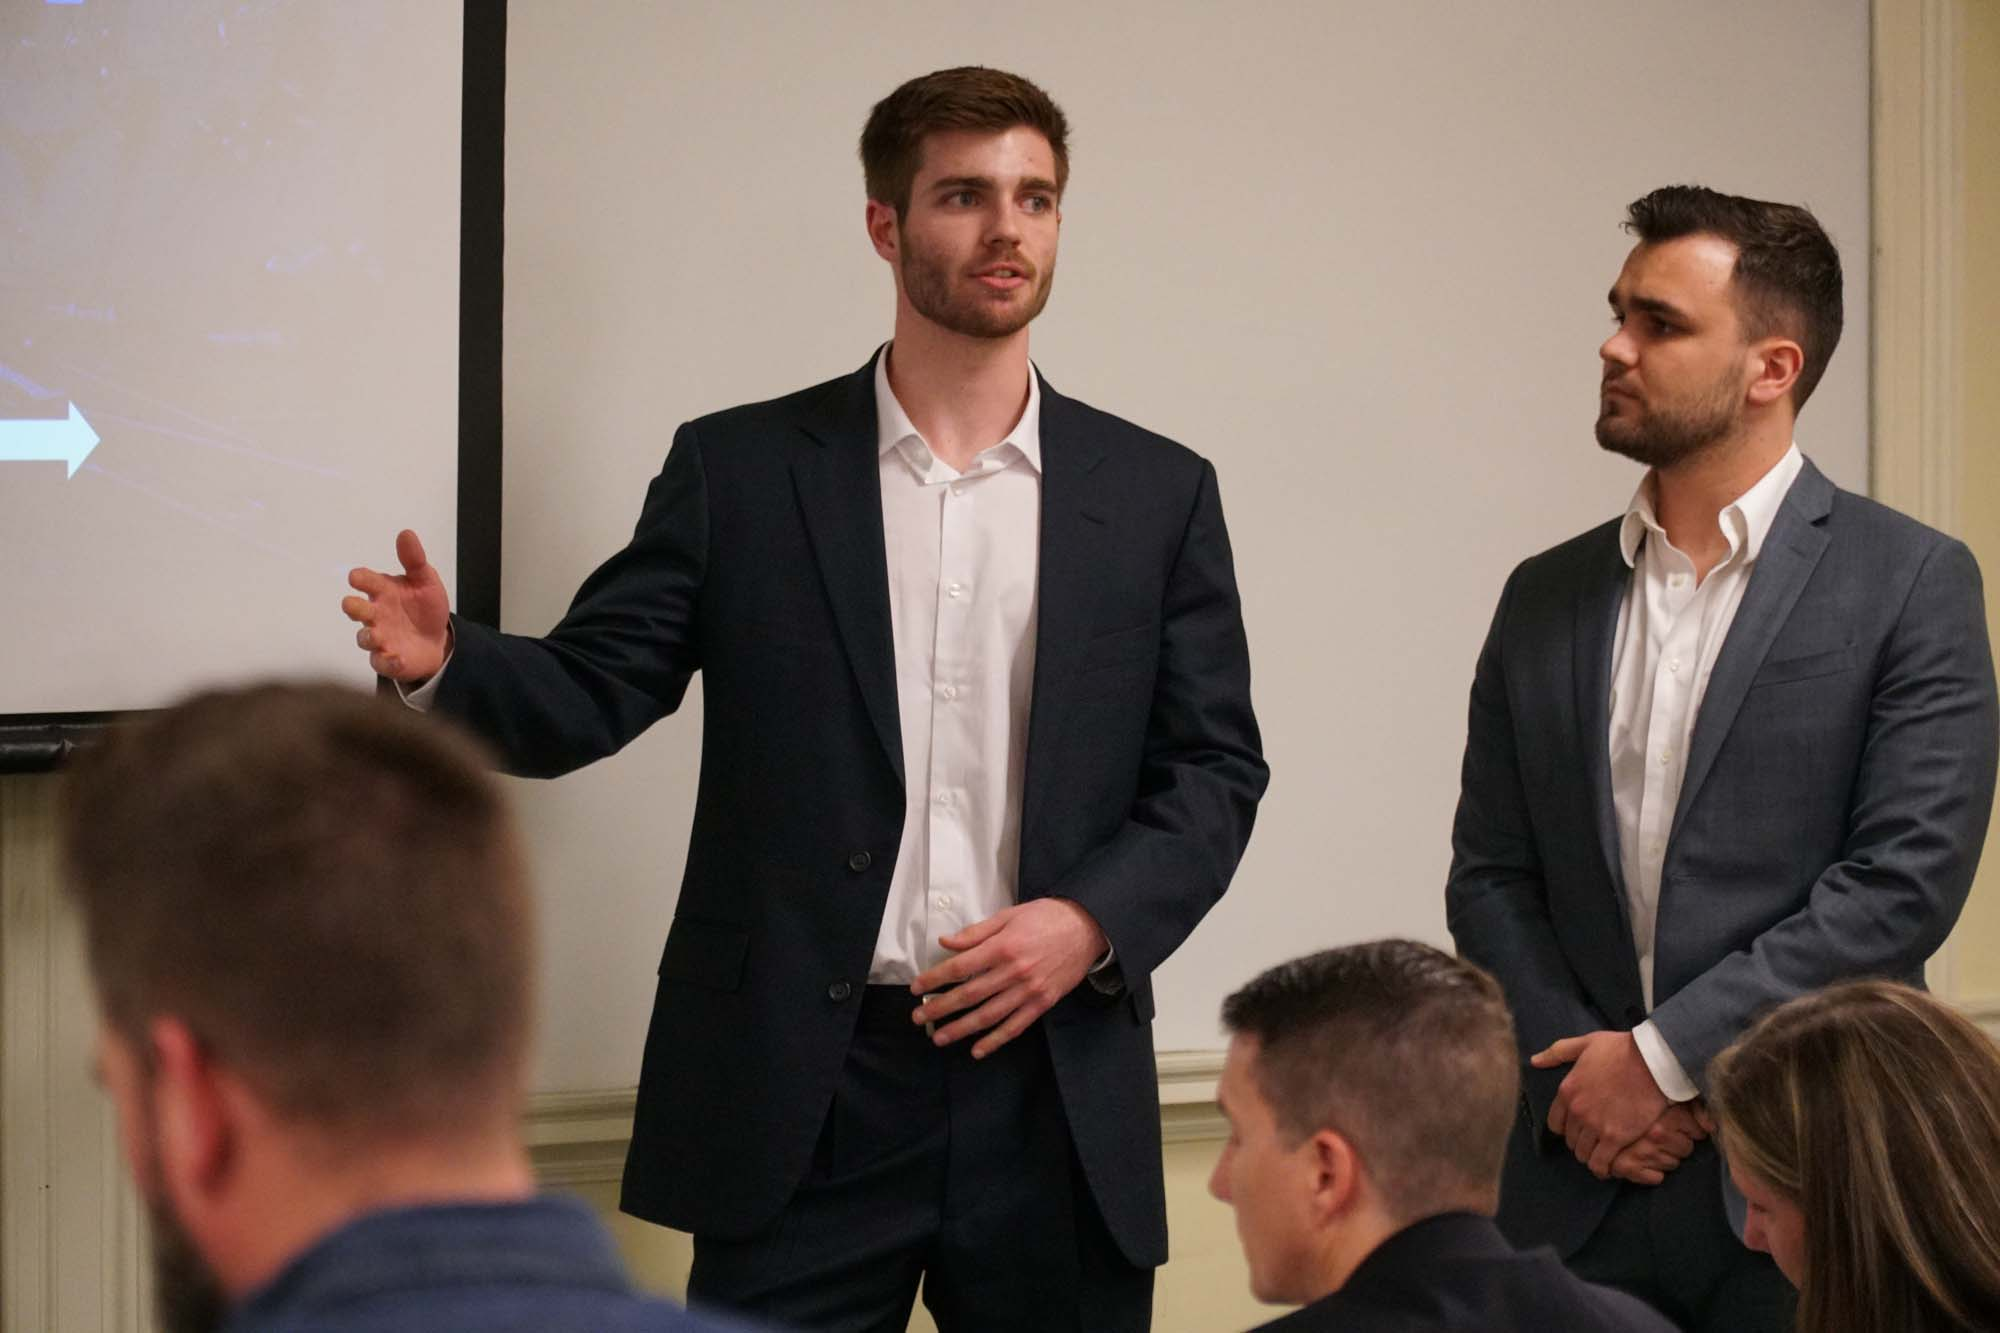 Part of Retooled team makes presentation at StartUp Pitch Competition